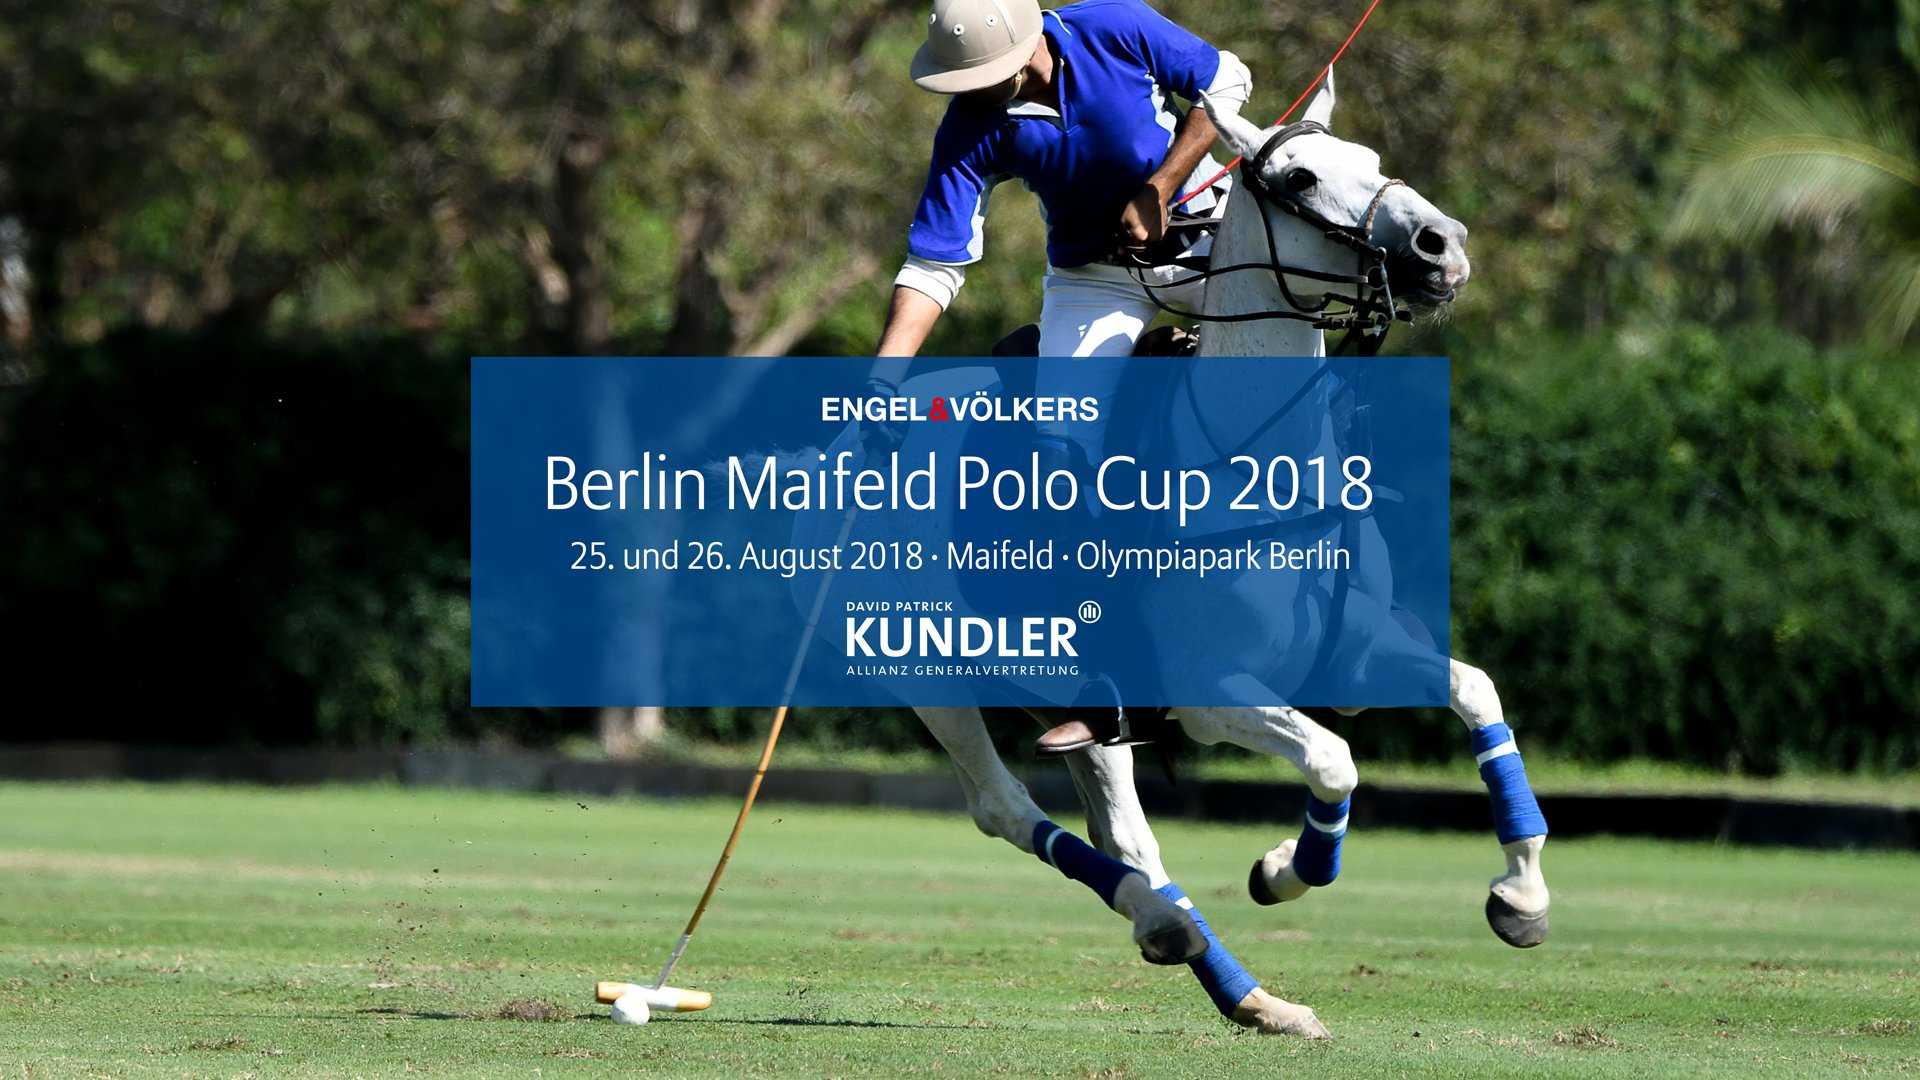 maifeld polo cup berlin 2018 allianz versicherung kundler. Black Bedroom Furniture Sets. Home Design Ideas